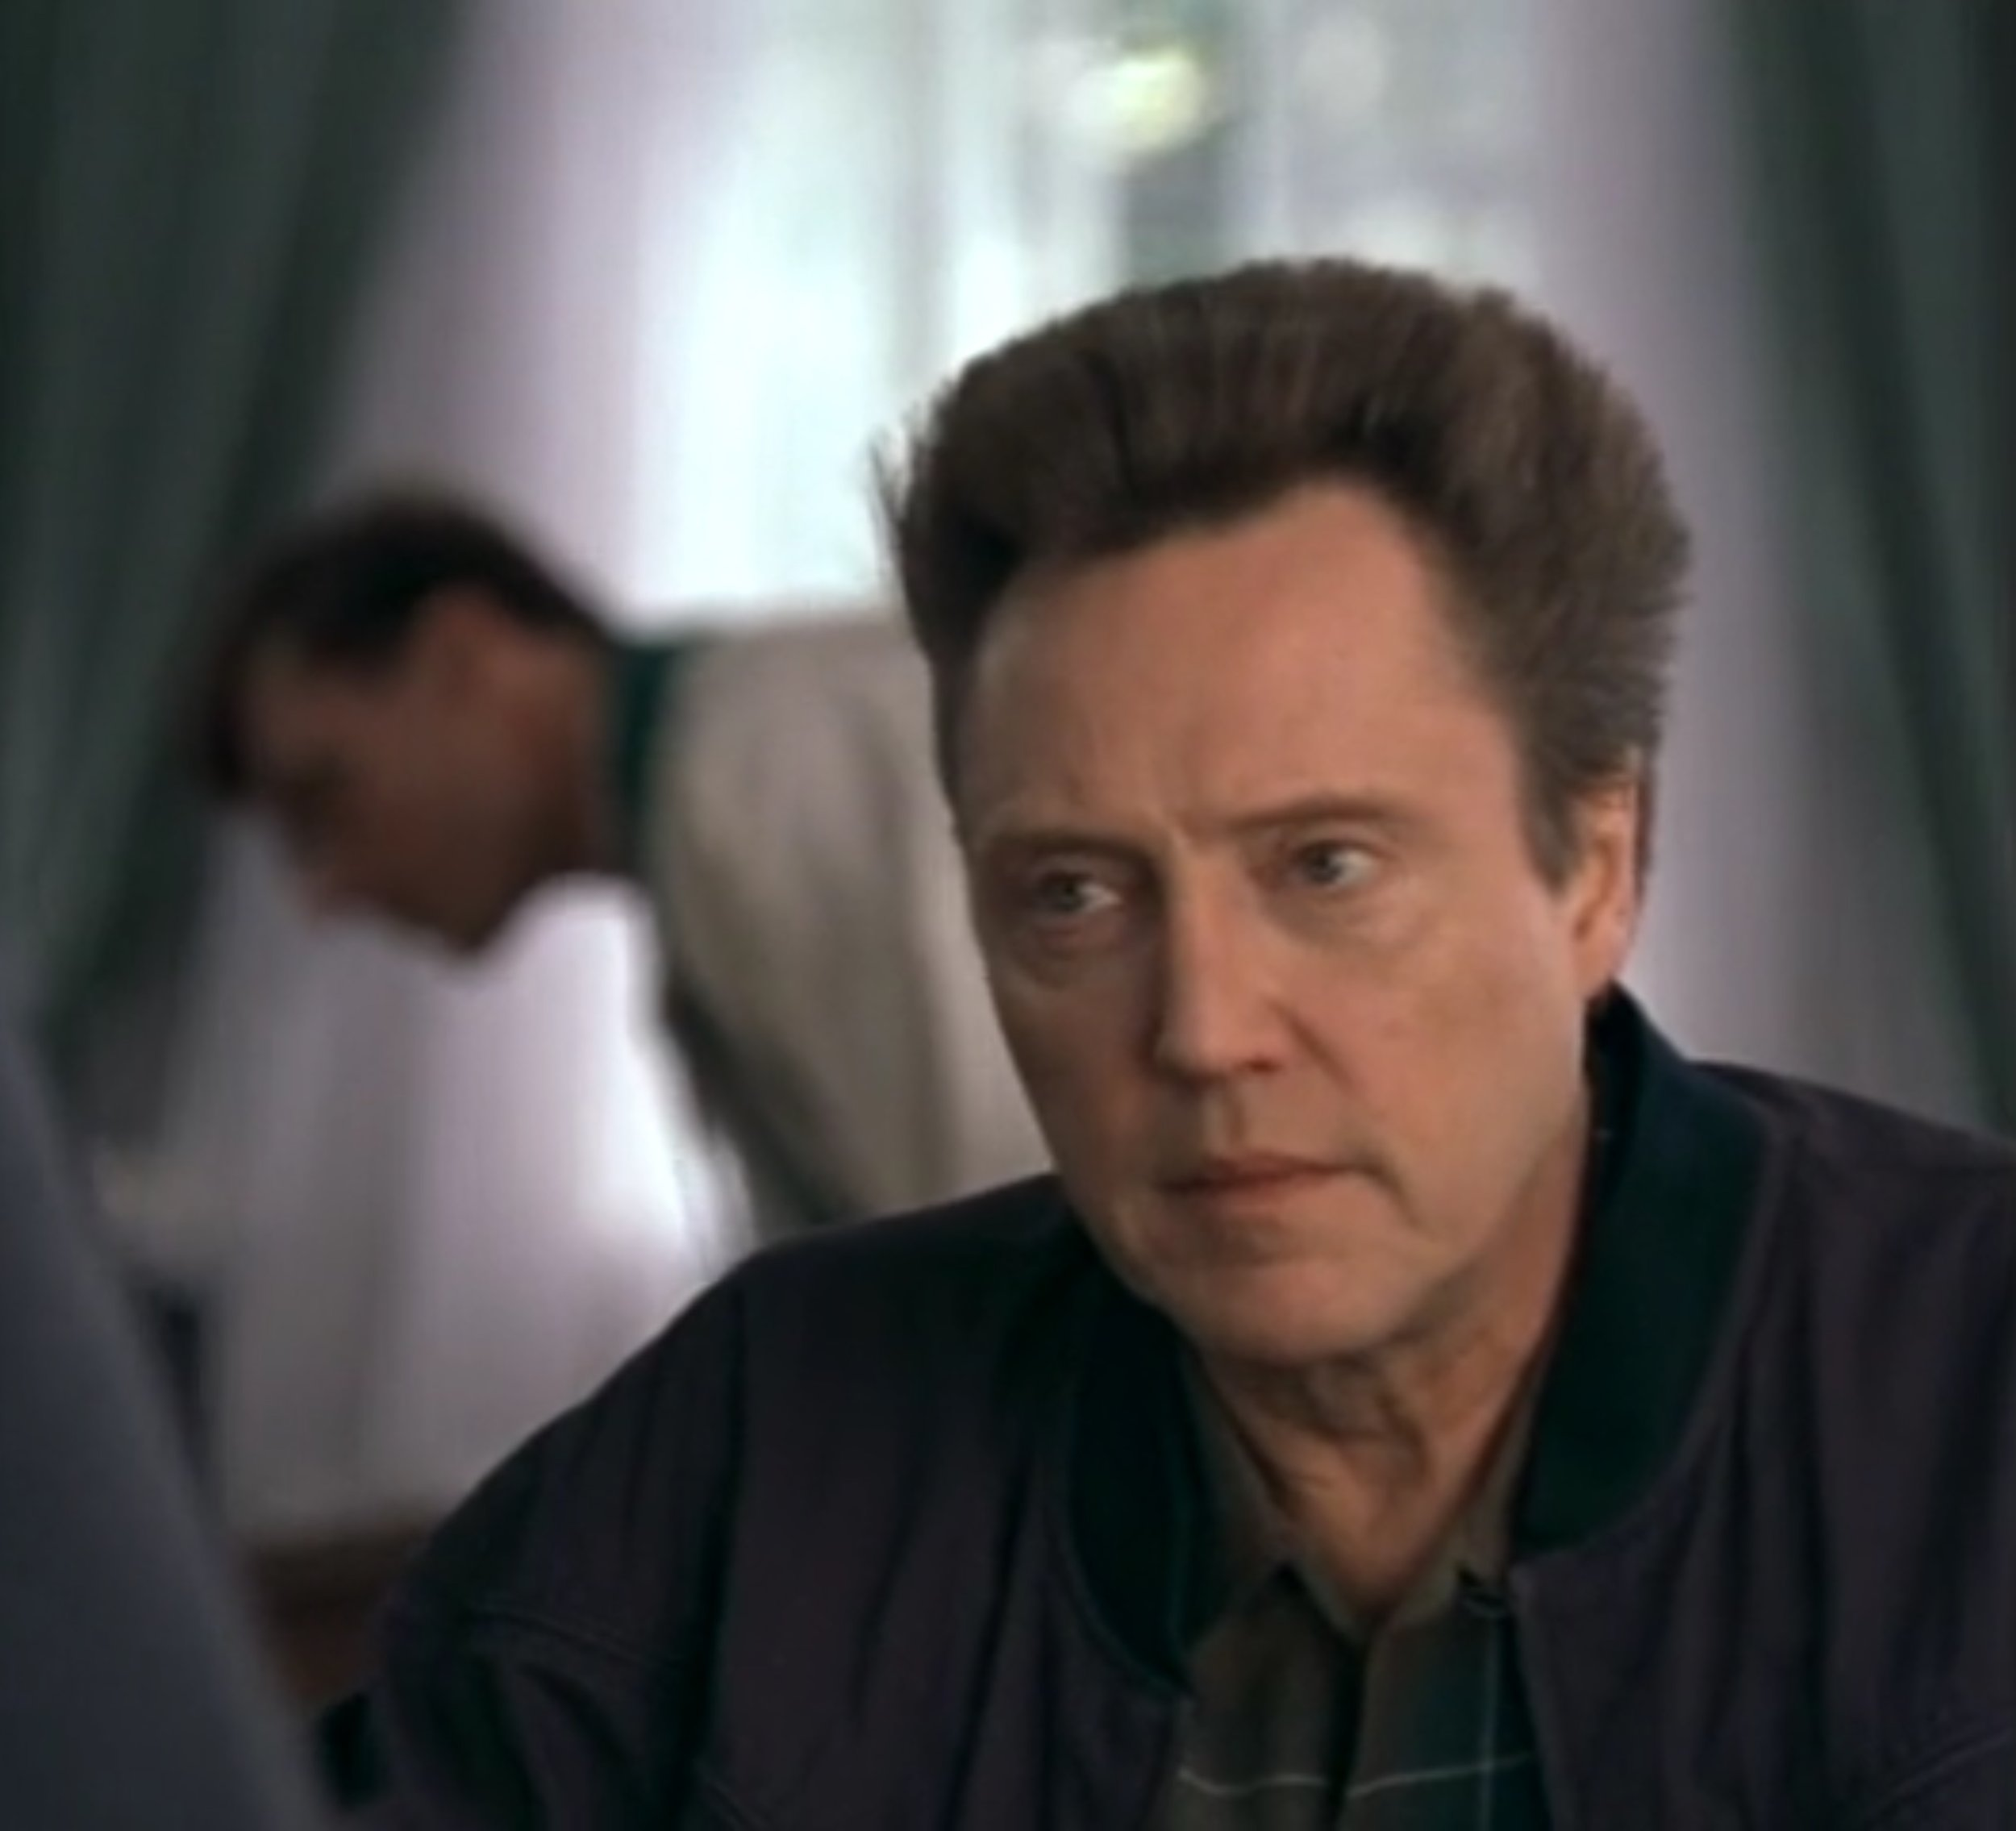 Me and Christopher Walken in The Opportunist.